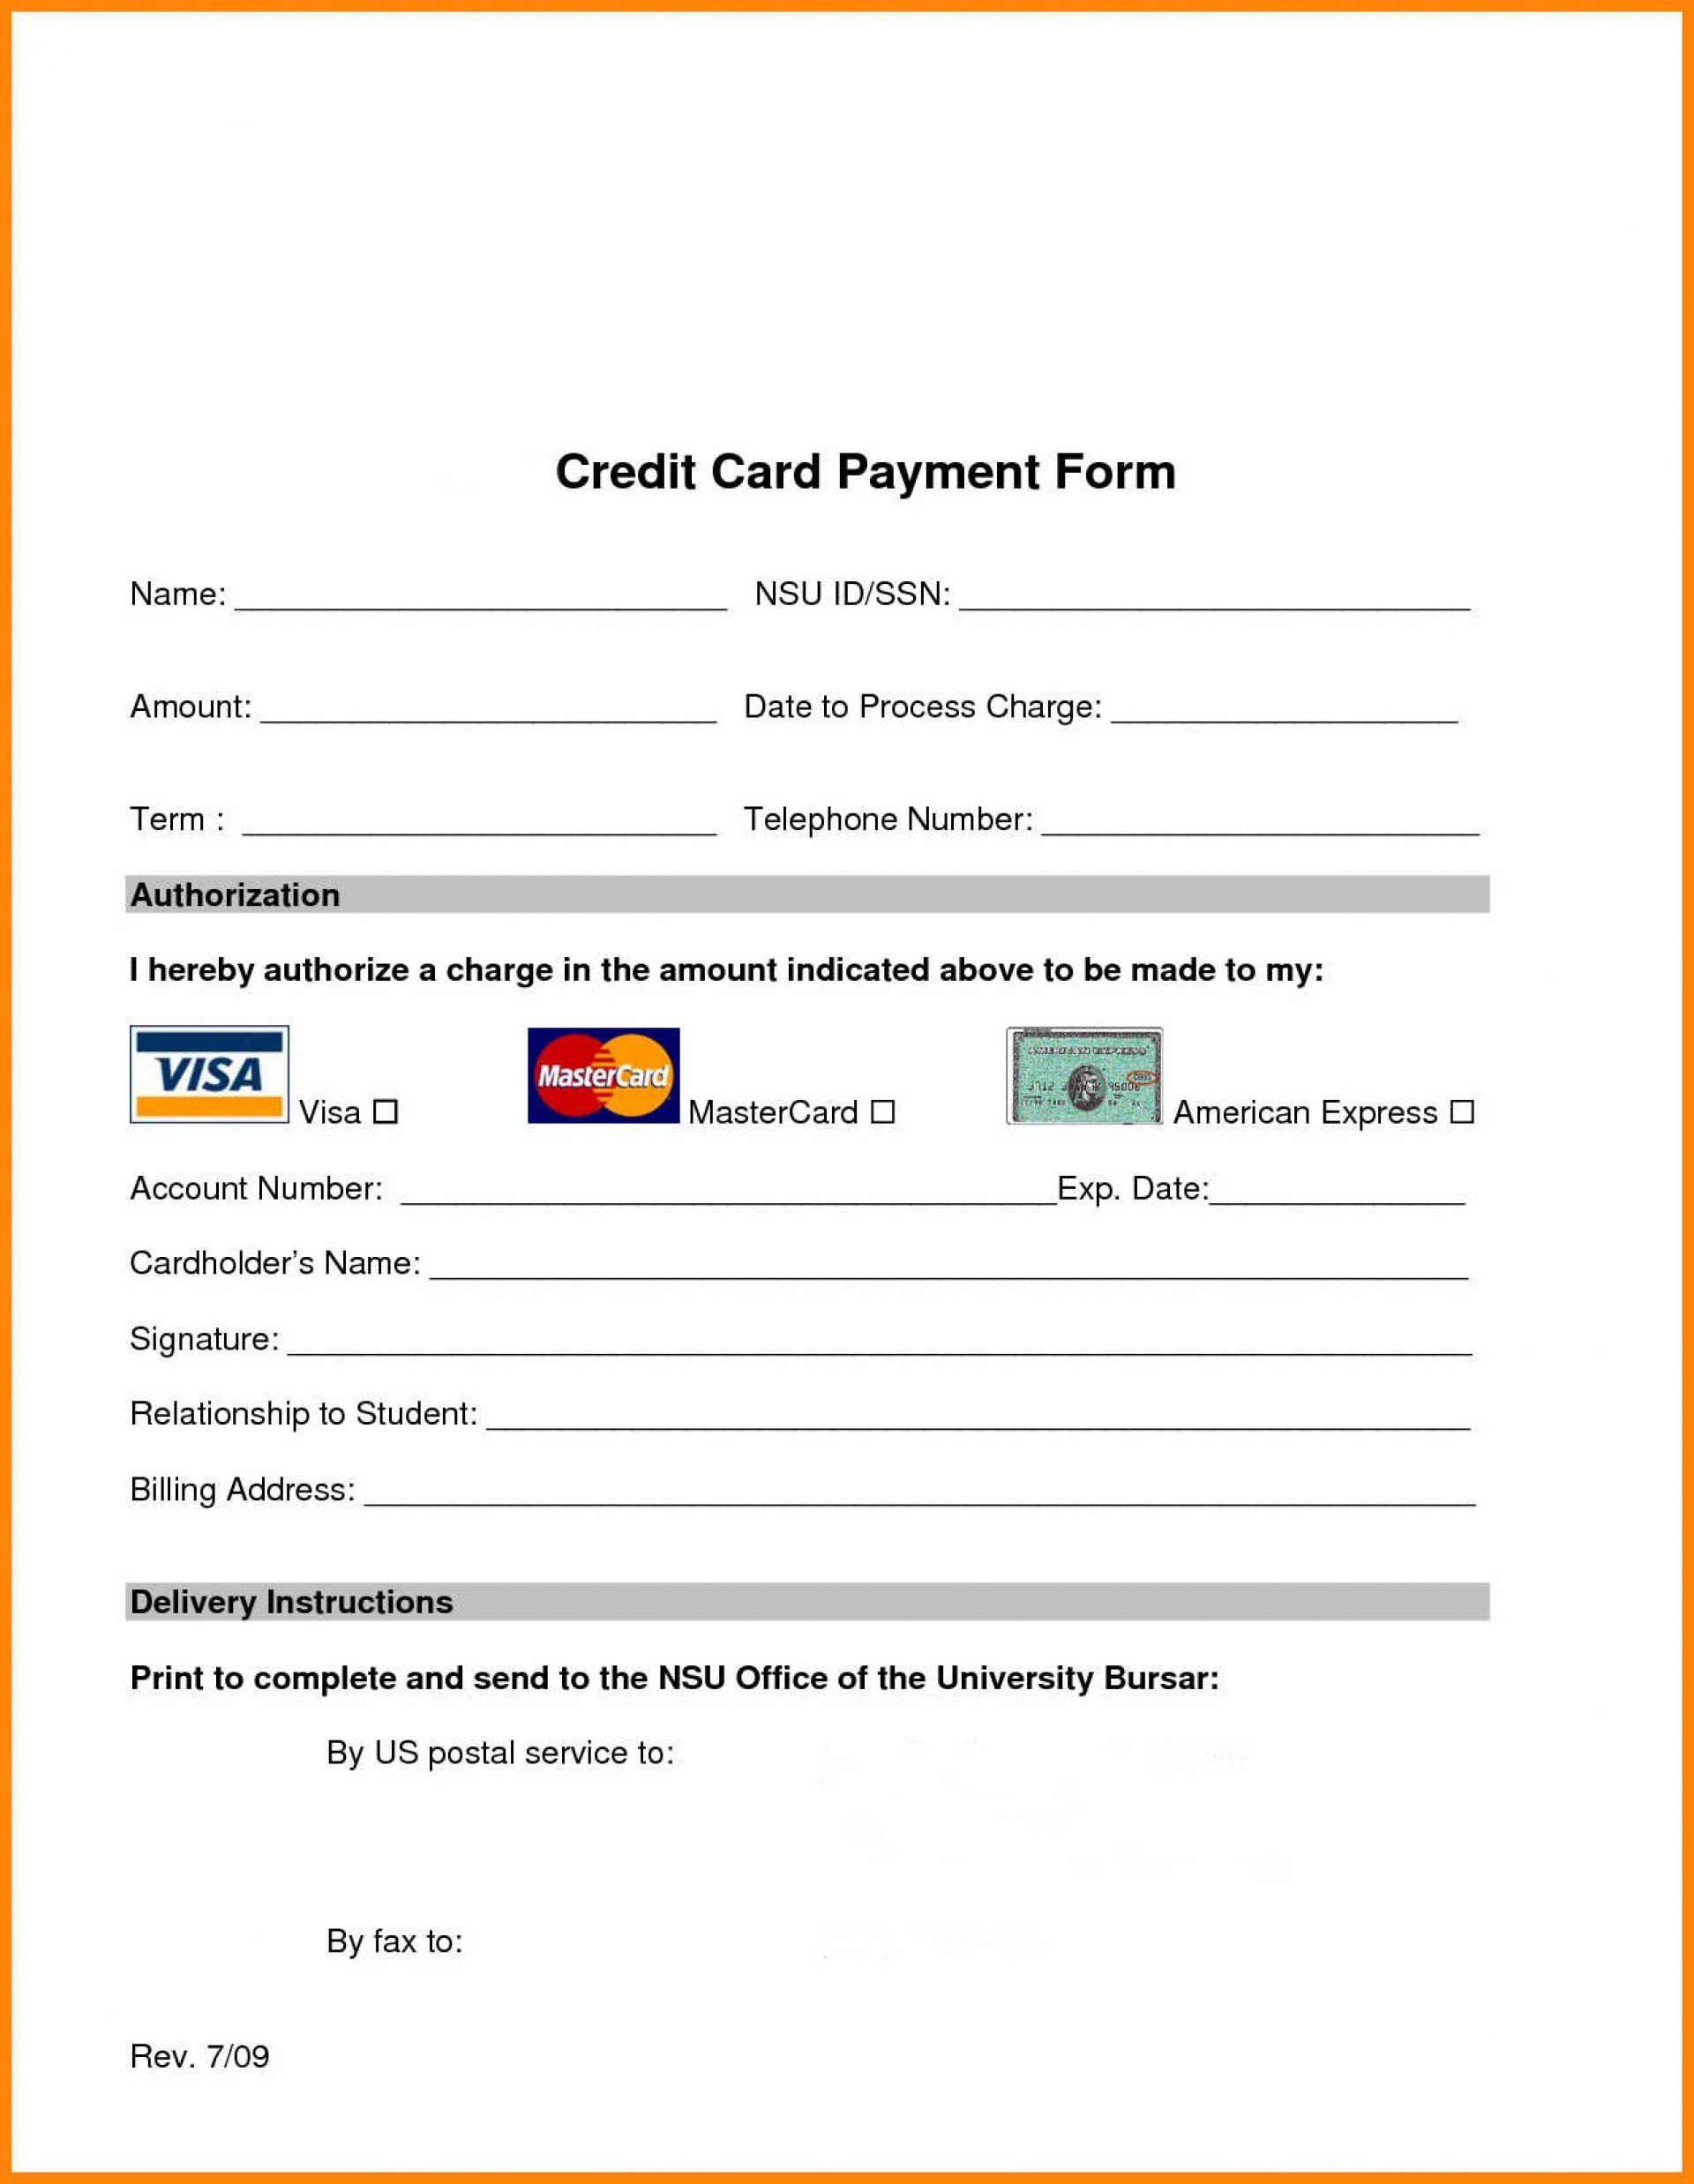 Hilton Credit Card Authorization Form Template Pdf Unbelievable With Regard To Credit Card Payment Form Template Pdf